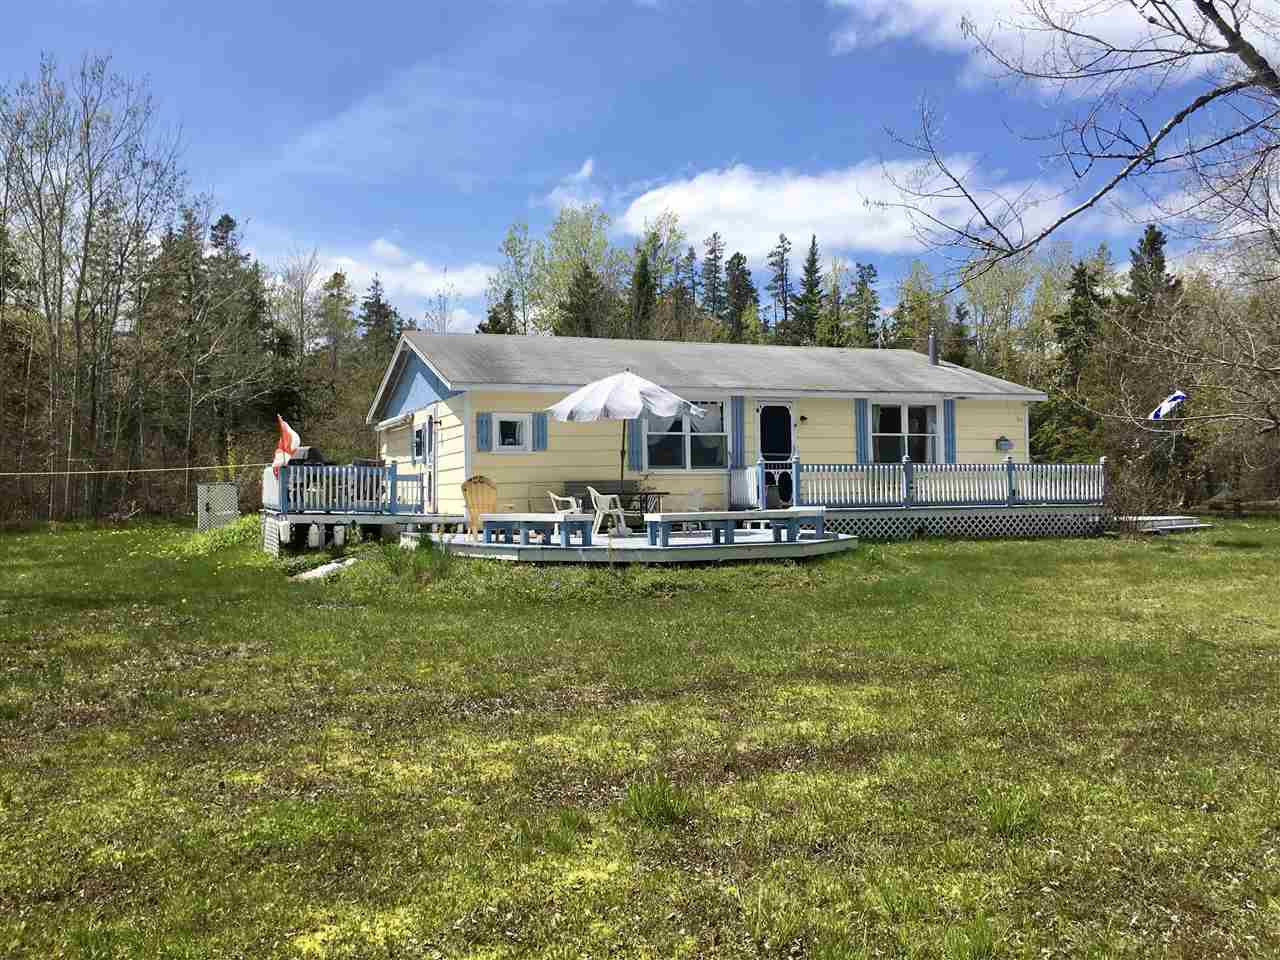 Main Photo: 59 Fraser Road in Brule Point: 103-Malagash, Wentworth Residential for sale (Northern Region)  : MLS®# 201912267